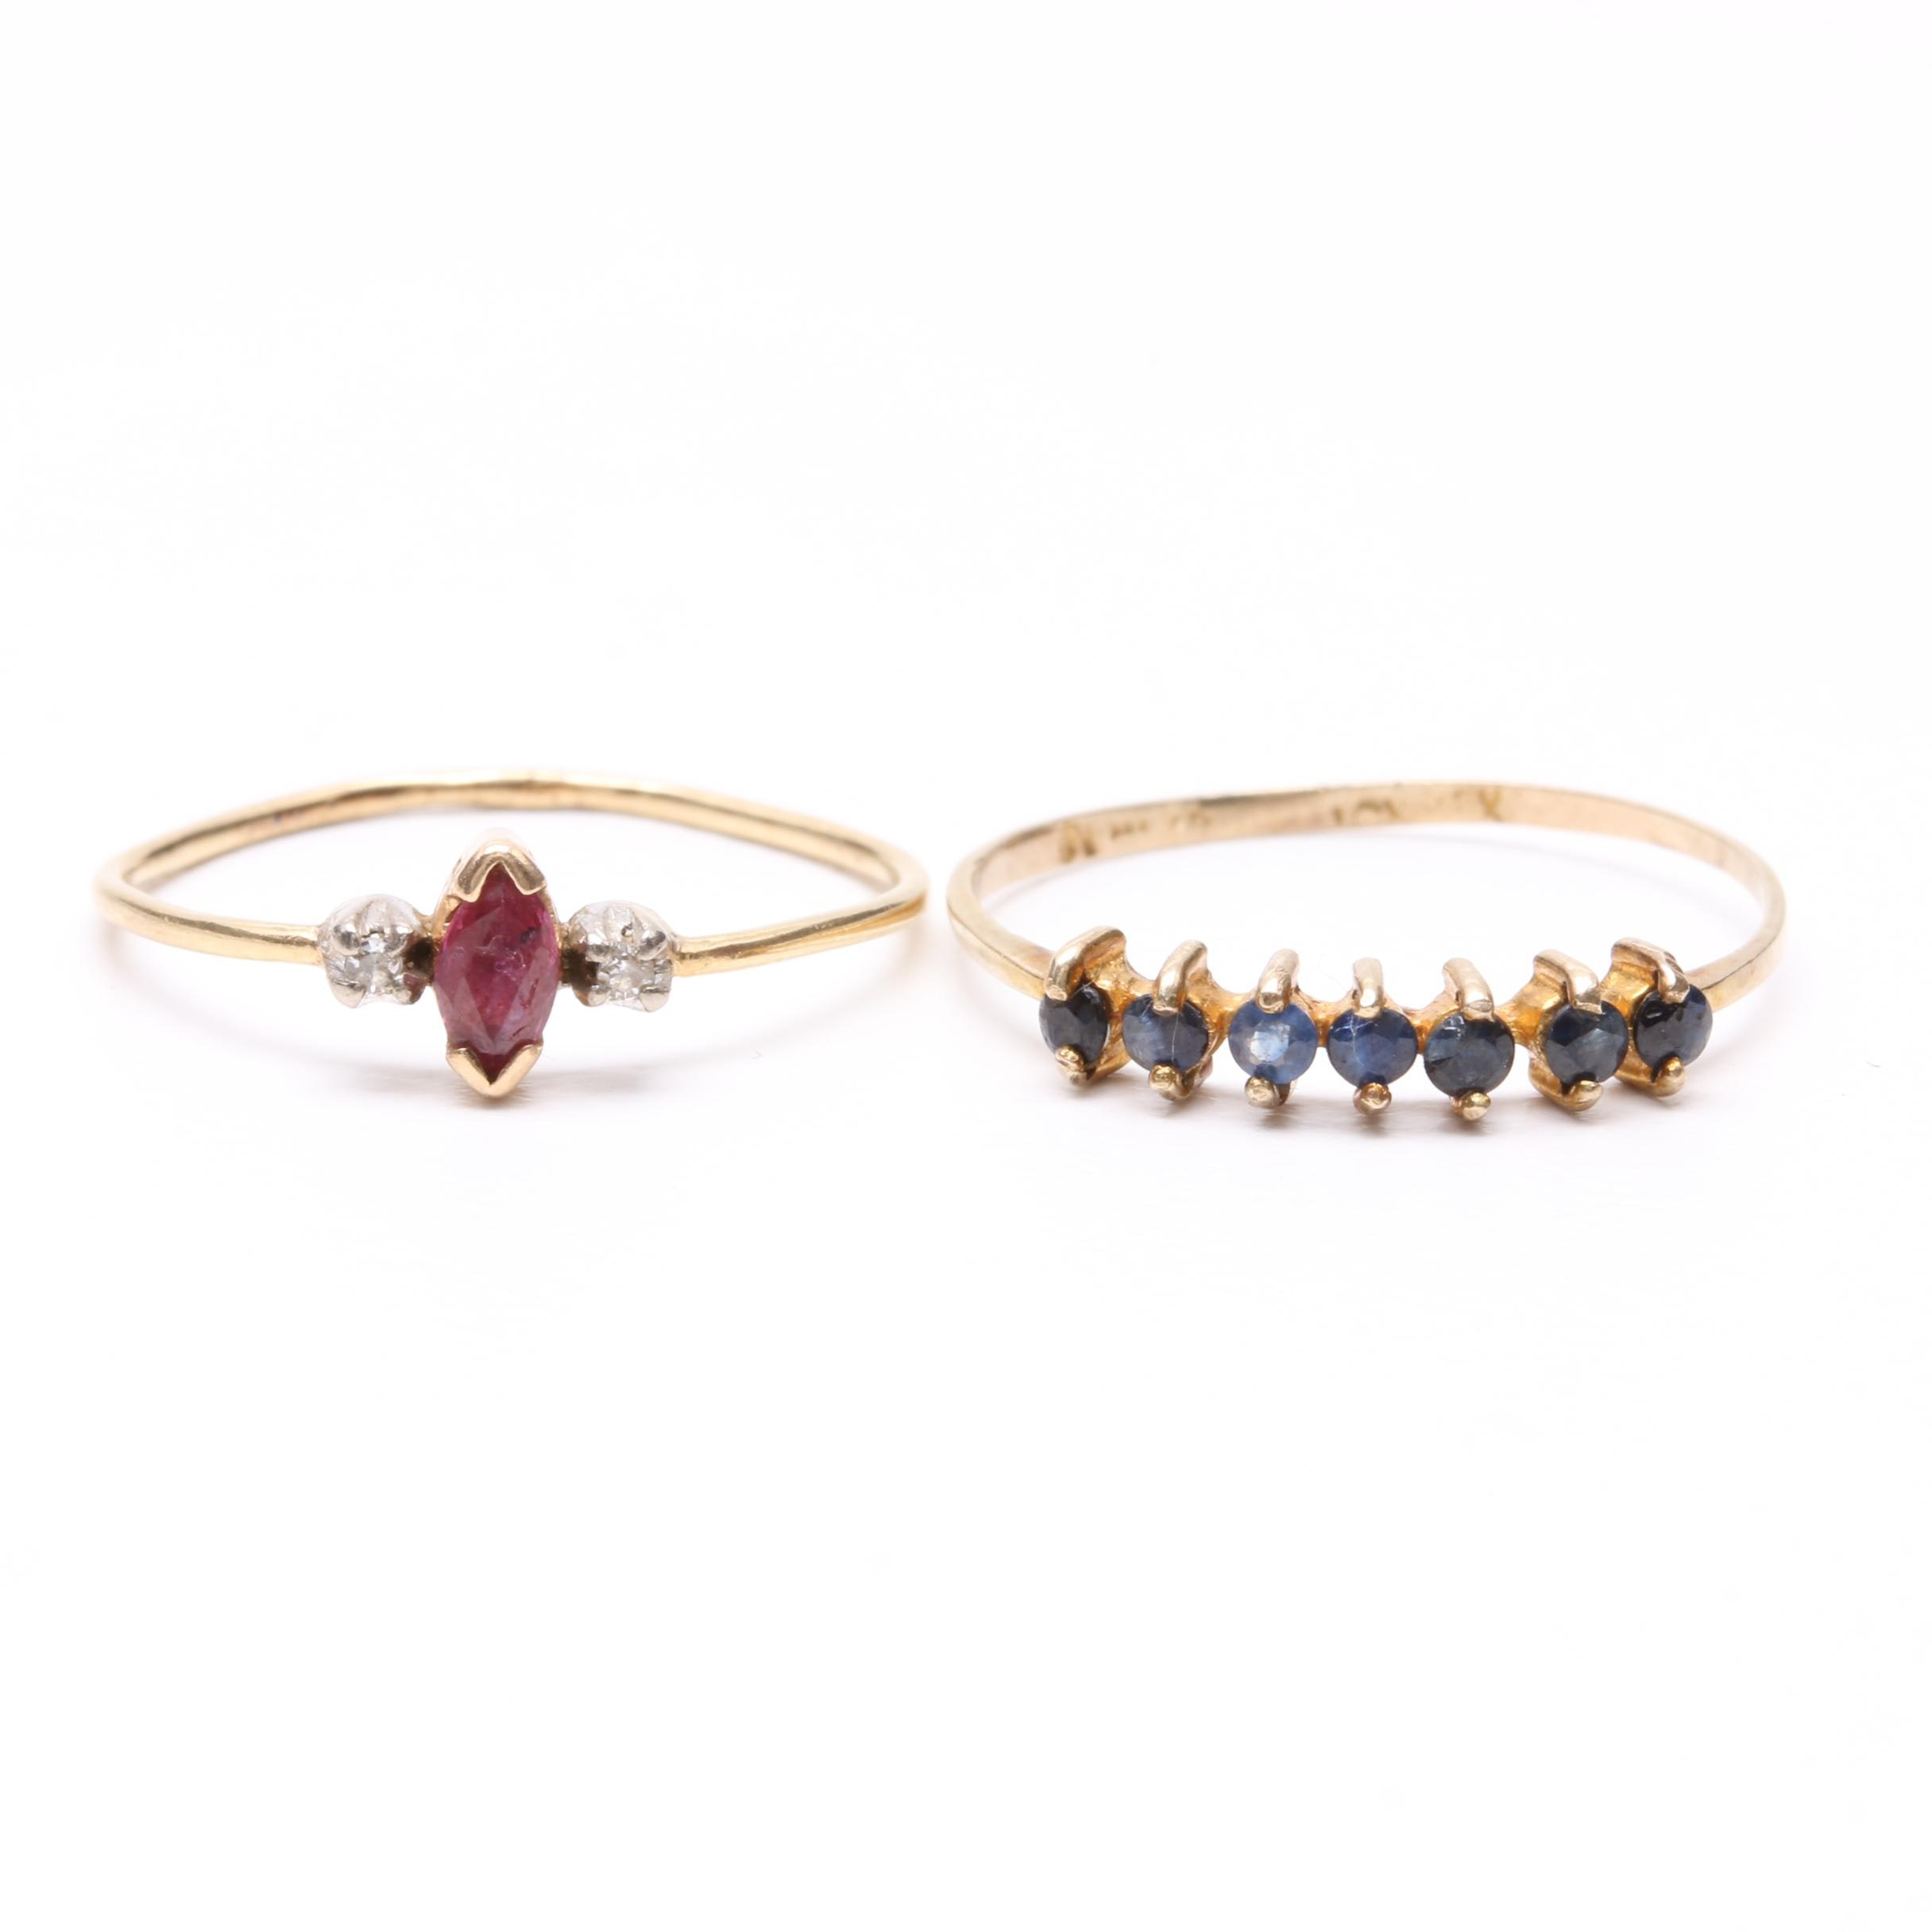 10K and 14K Yellow Gold Gemstone Rings Including Diamond